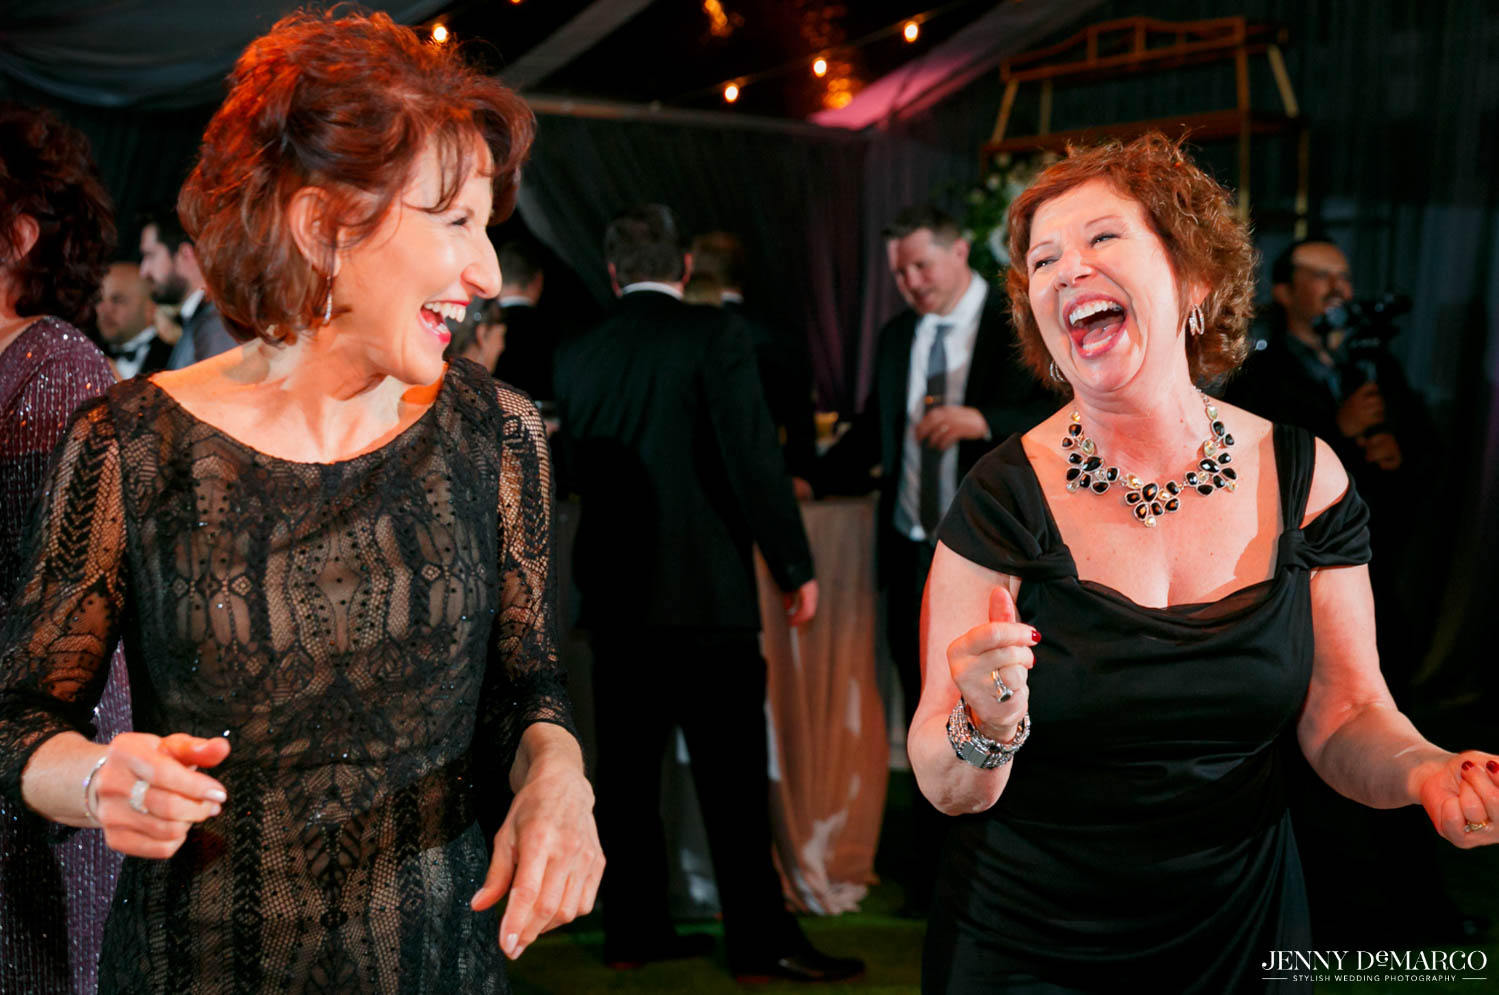 mother of bride laughing with friend and dancing